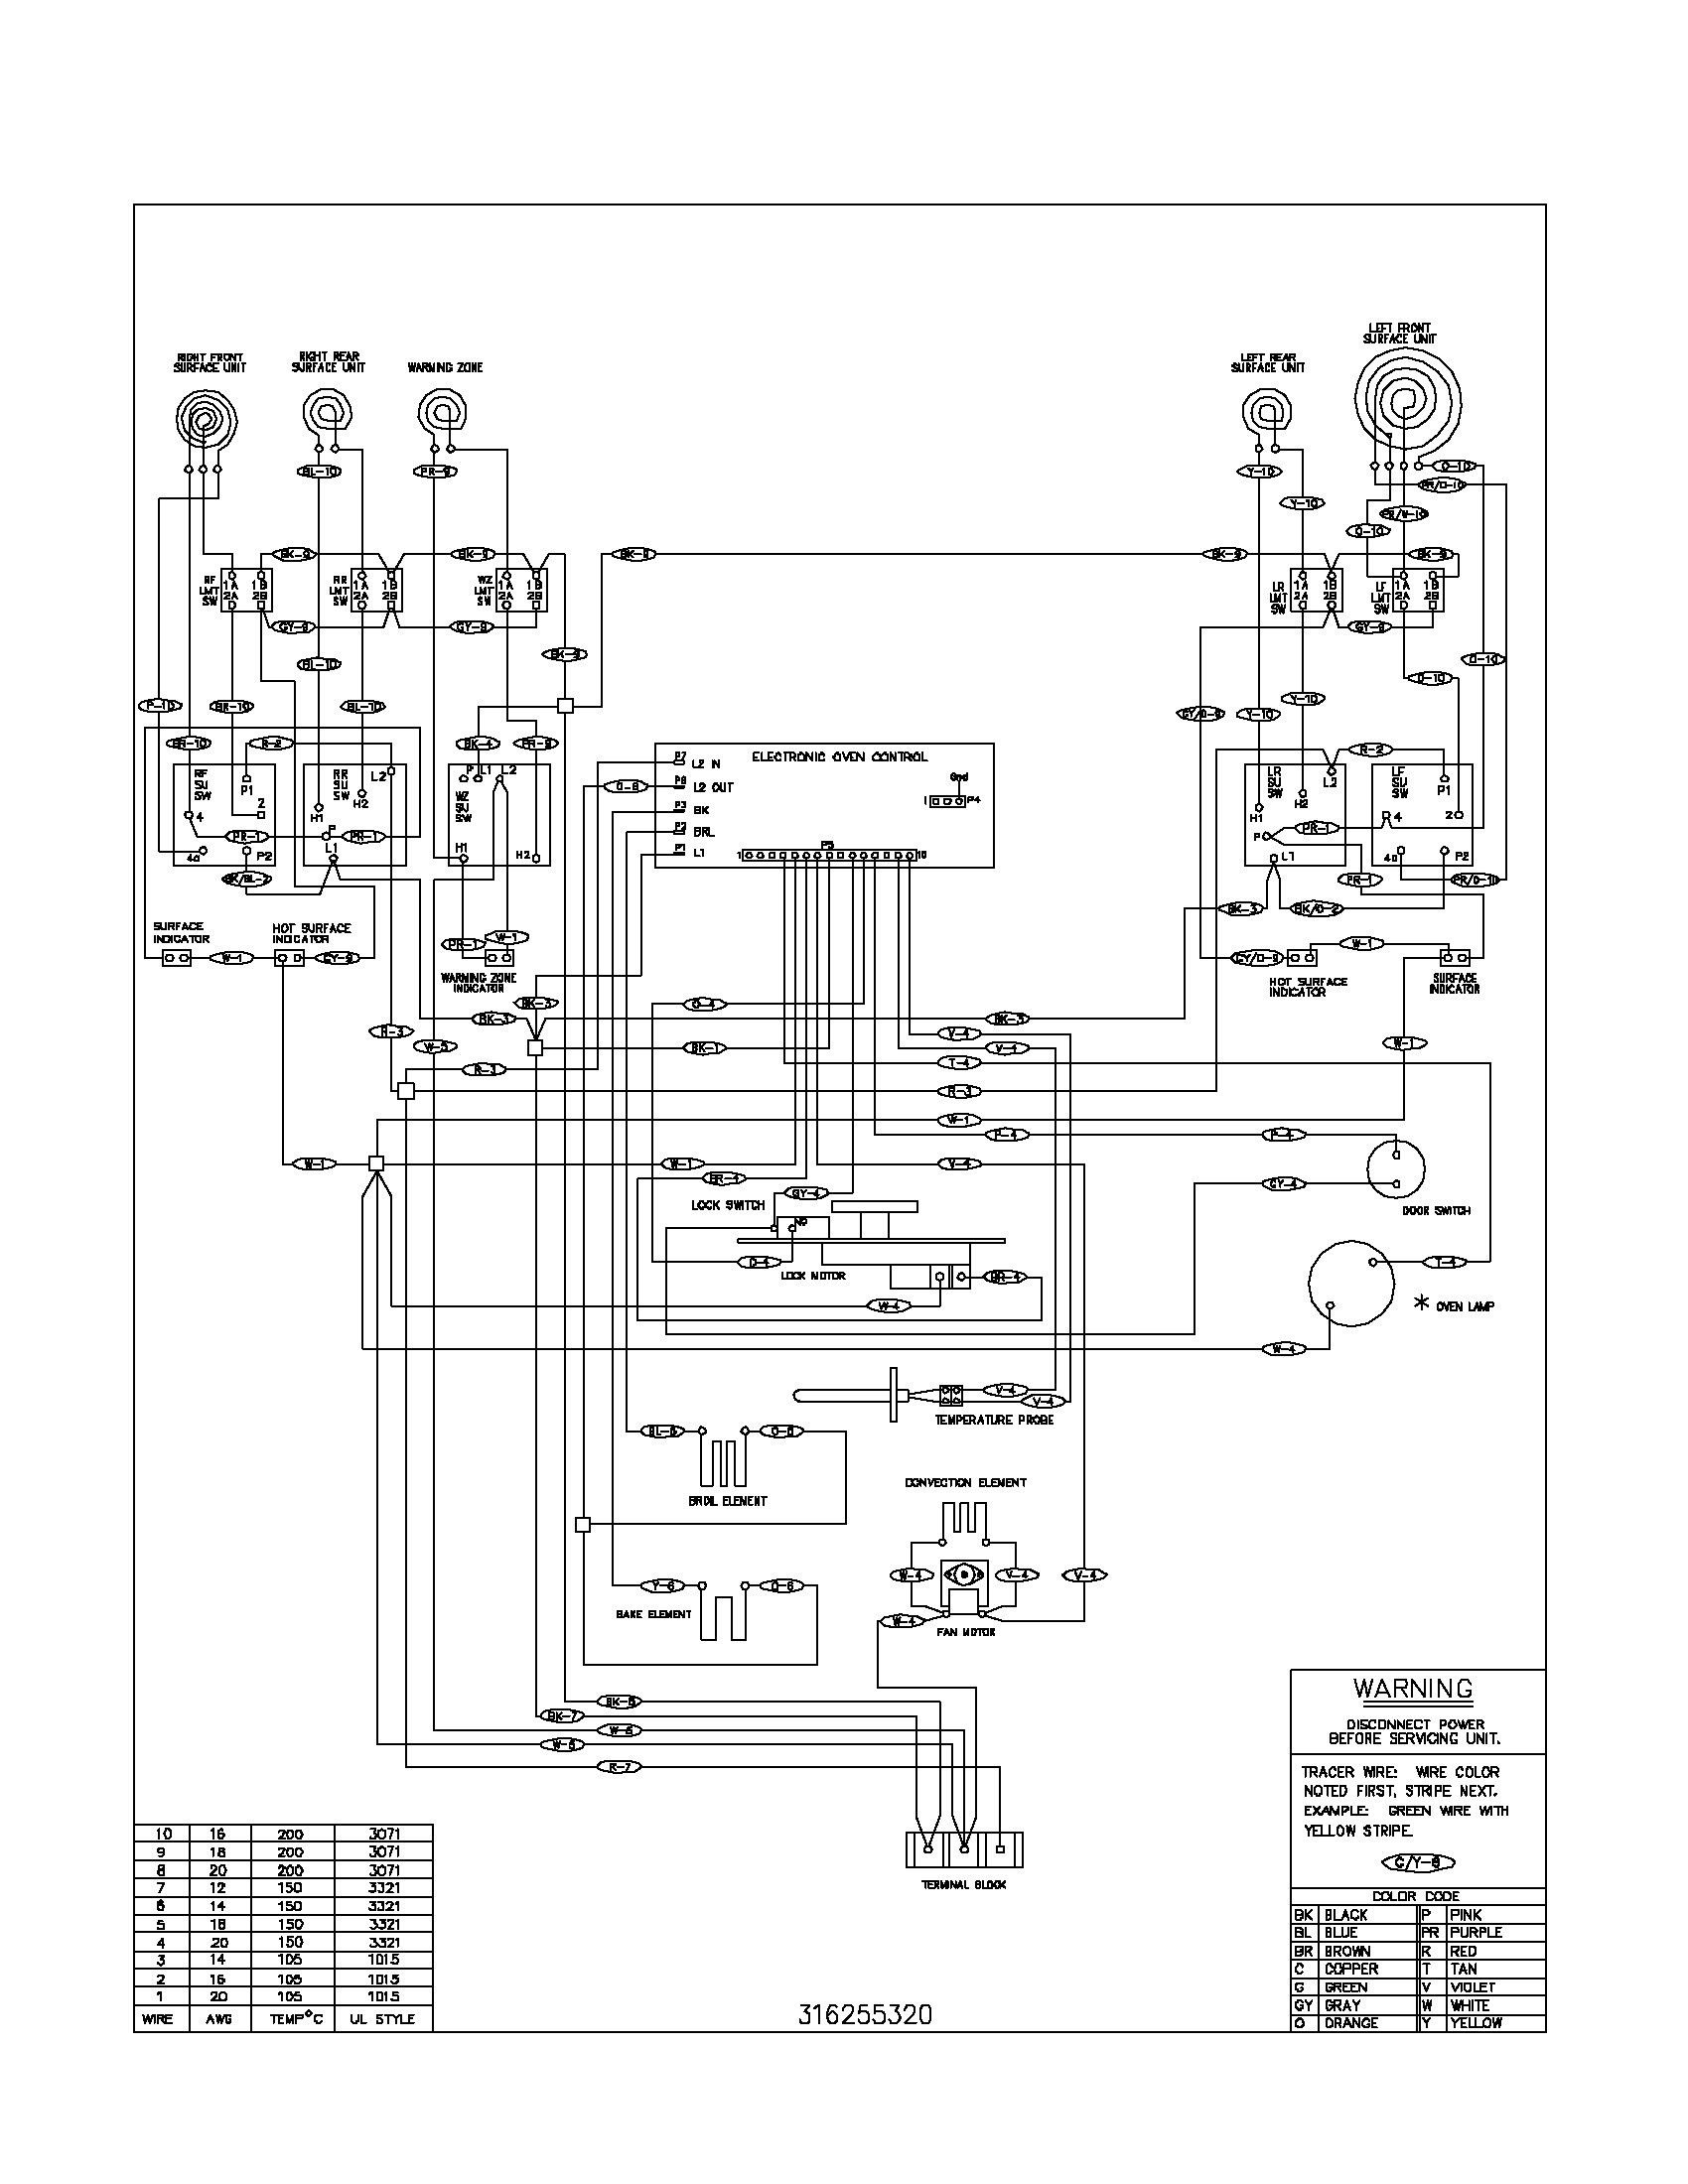 24 wiring diagram for electric stove wiring diagram Electric Stove Wiring Diagram Electric Stove Wiring Diagram #5